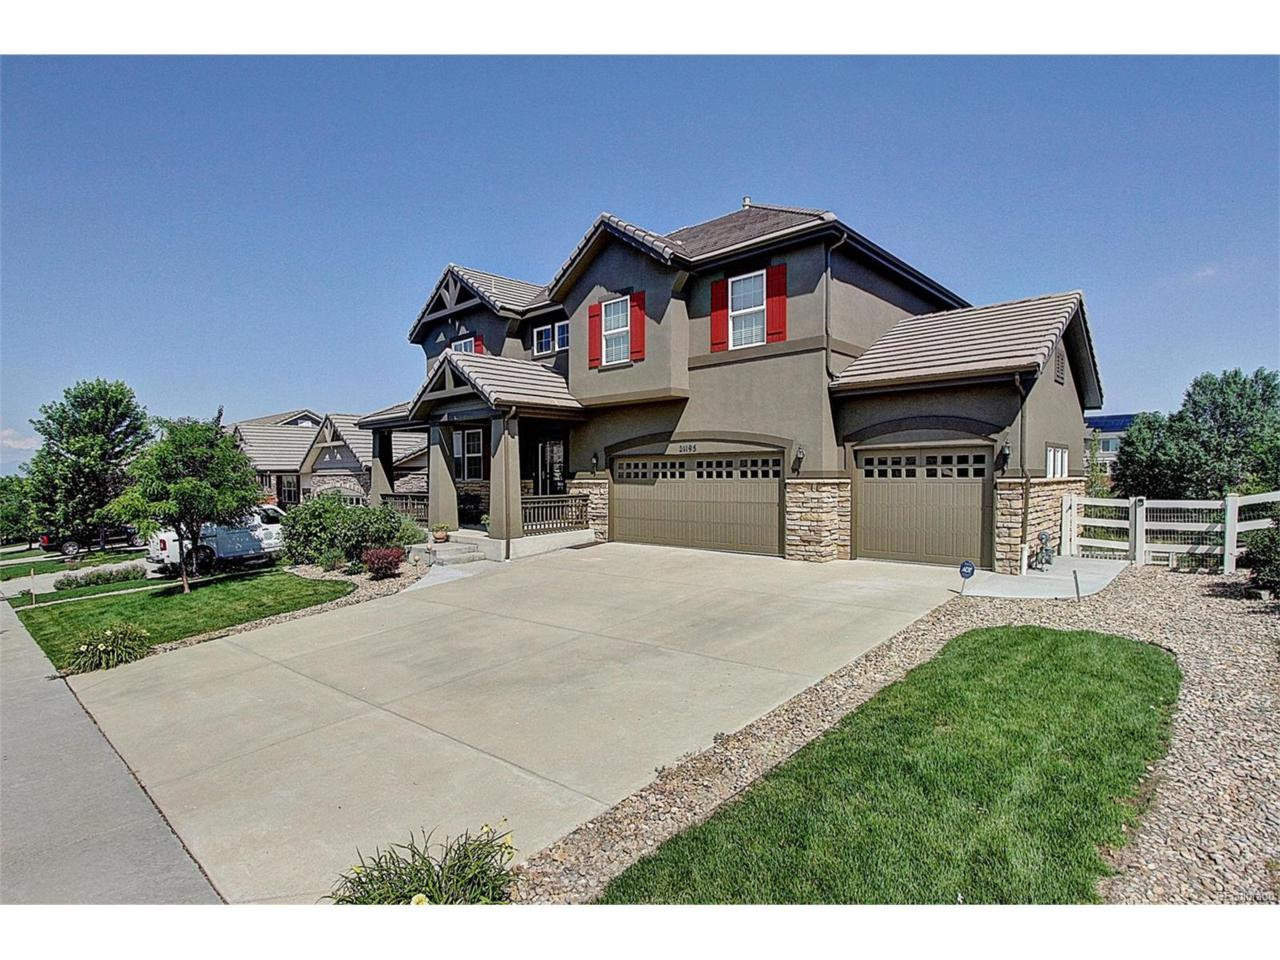 21195 E Eastman Avenue, Aurora, CO 80013 (MLS #6310231) :: 8z Real Estate